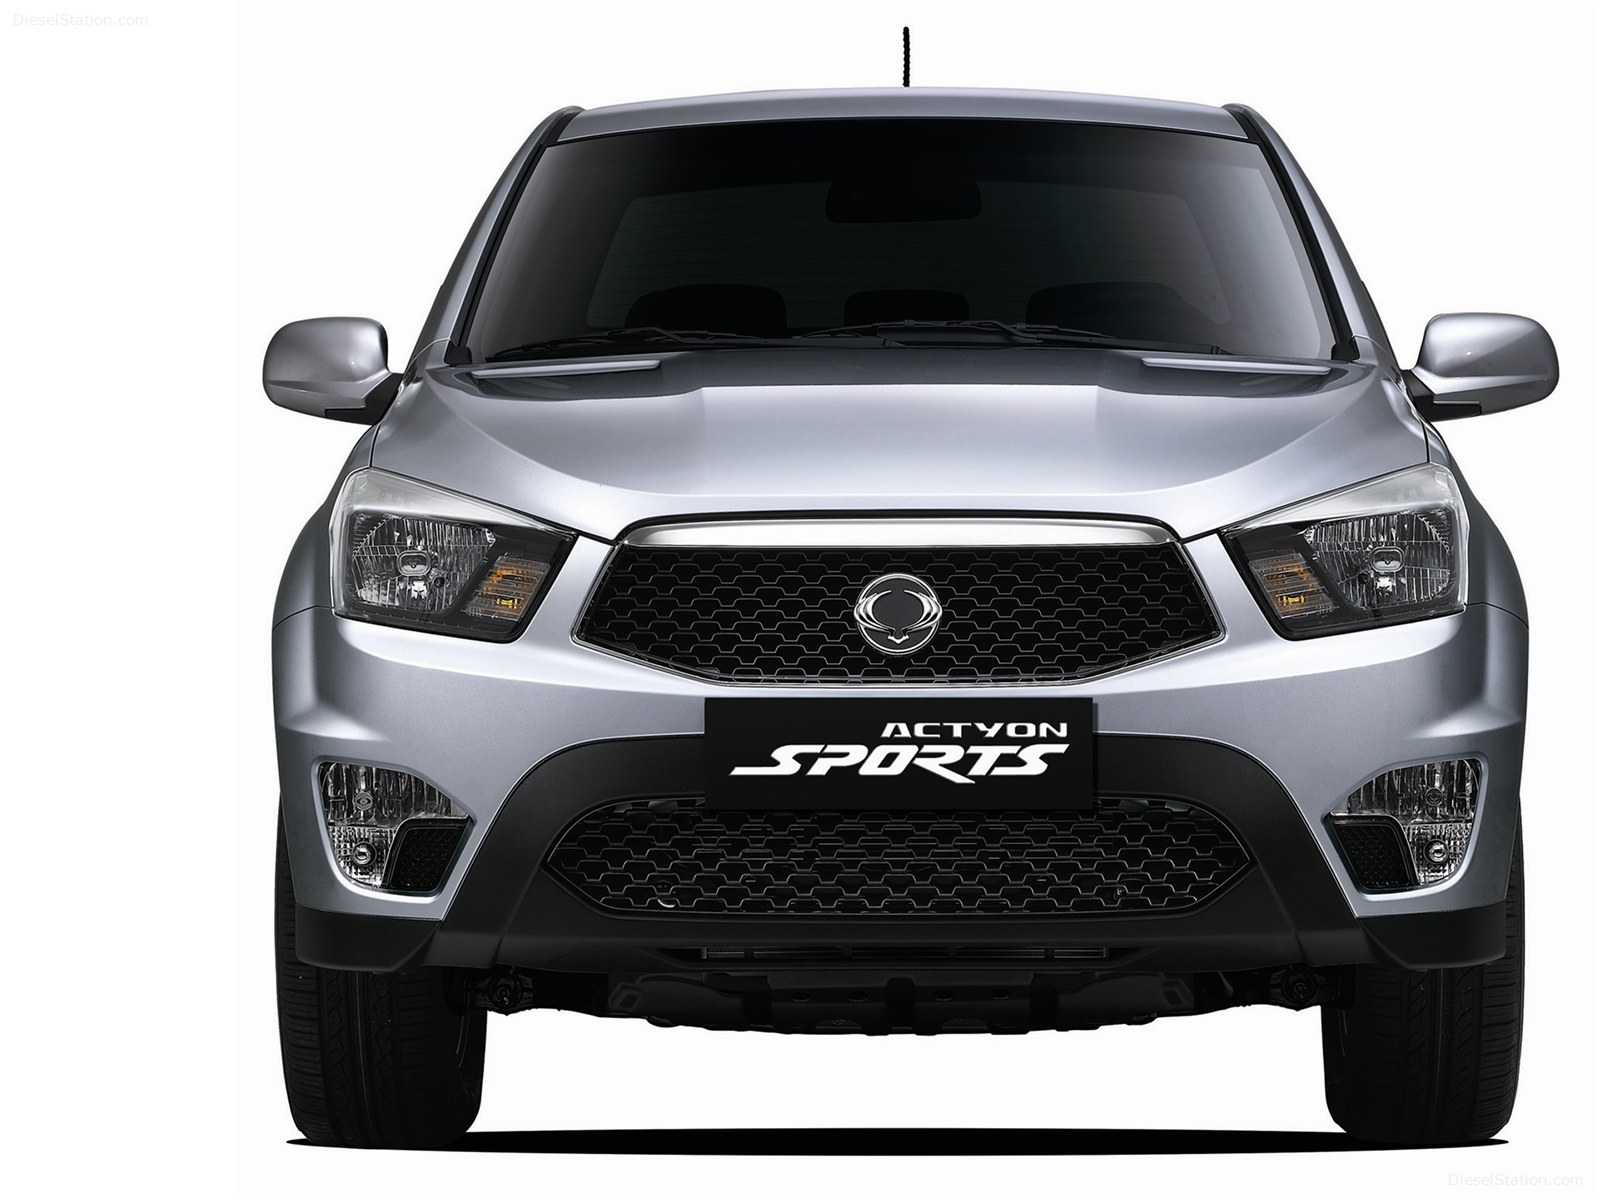 ssangyong actyon sports 2012 wallpaper